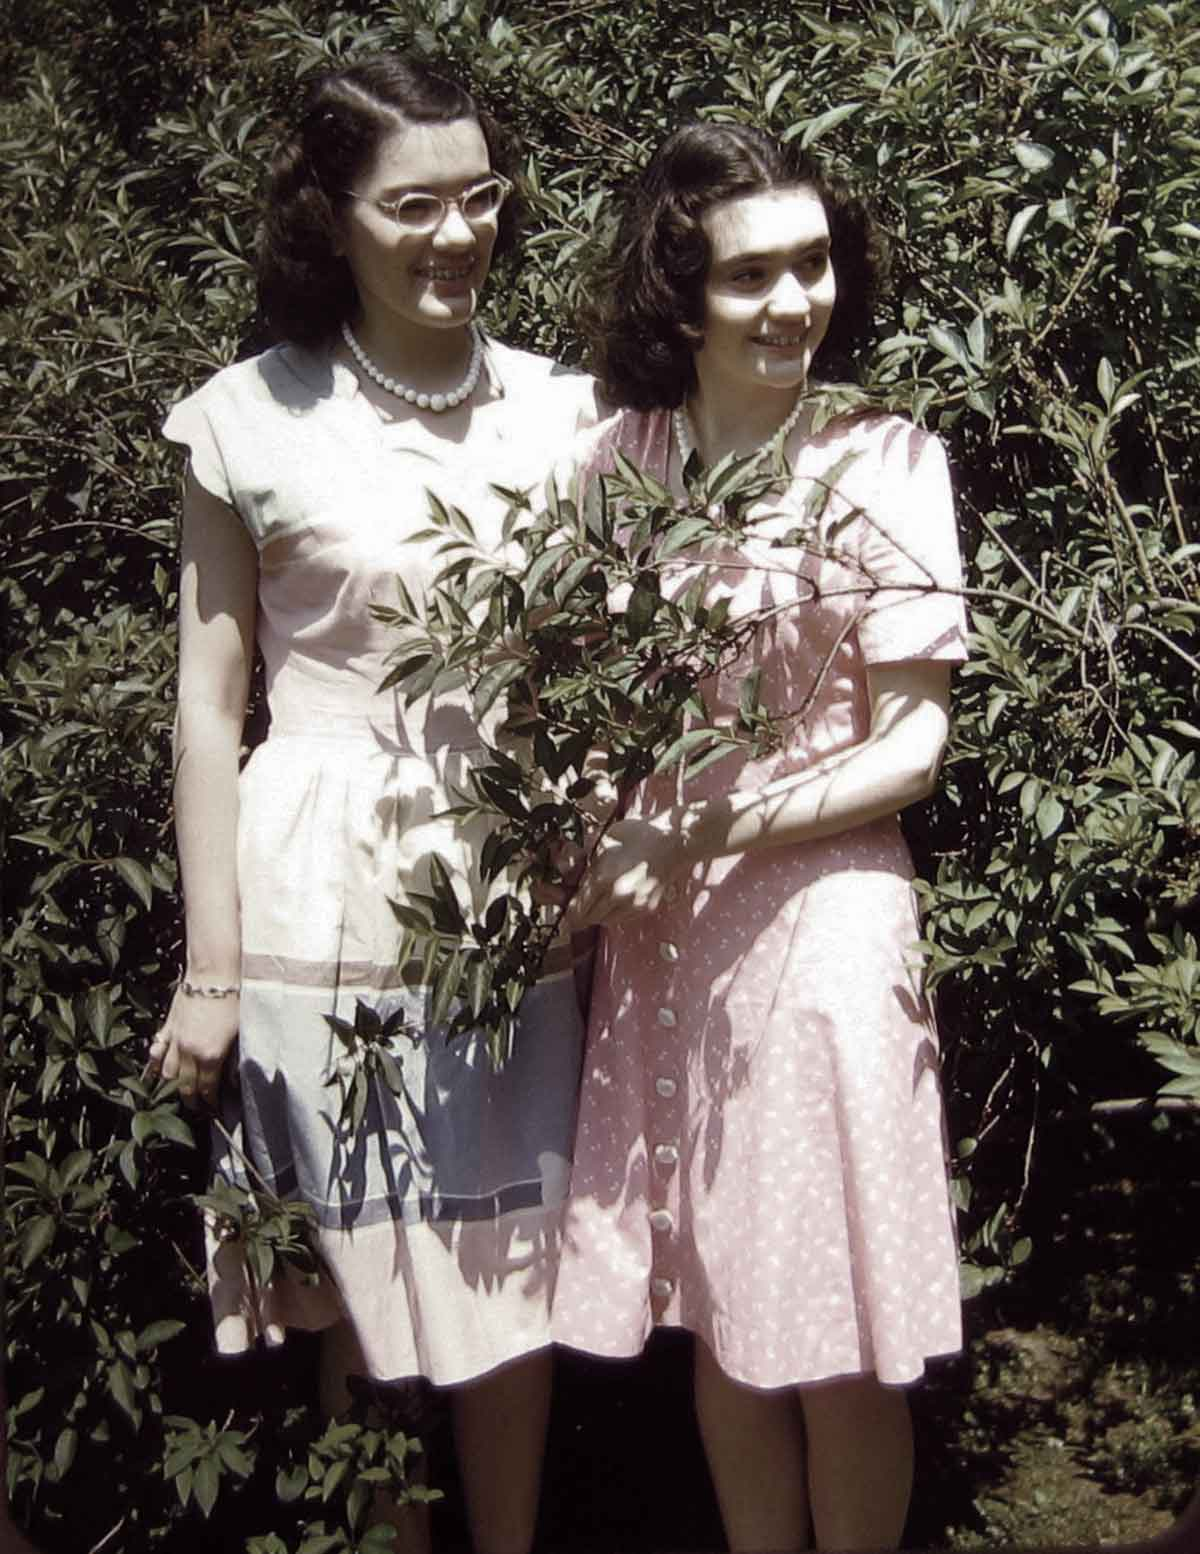 found photos of women in the 1940s - Kodachtome